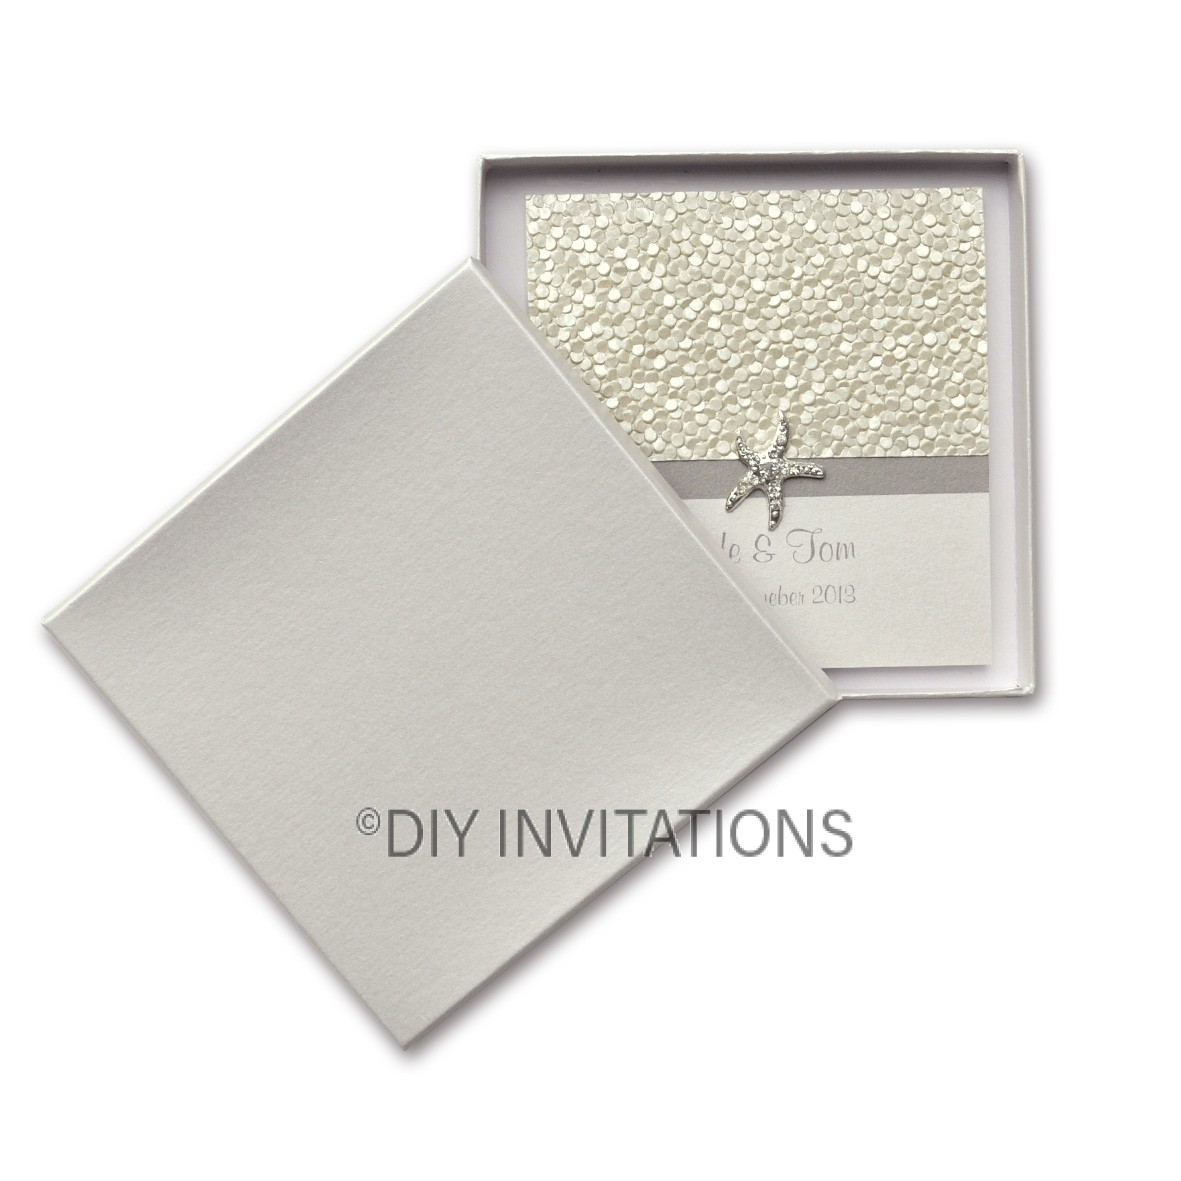 Rigid Invite Box - Square Plus - Stardream Quartz (170mmx155mm)